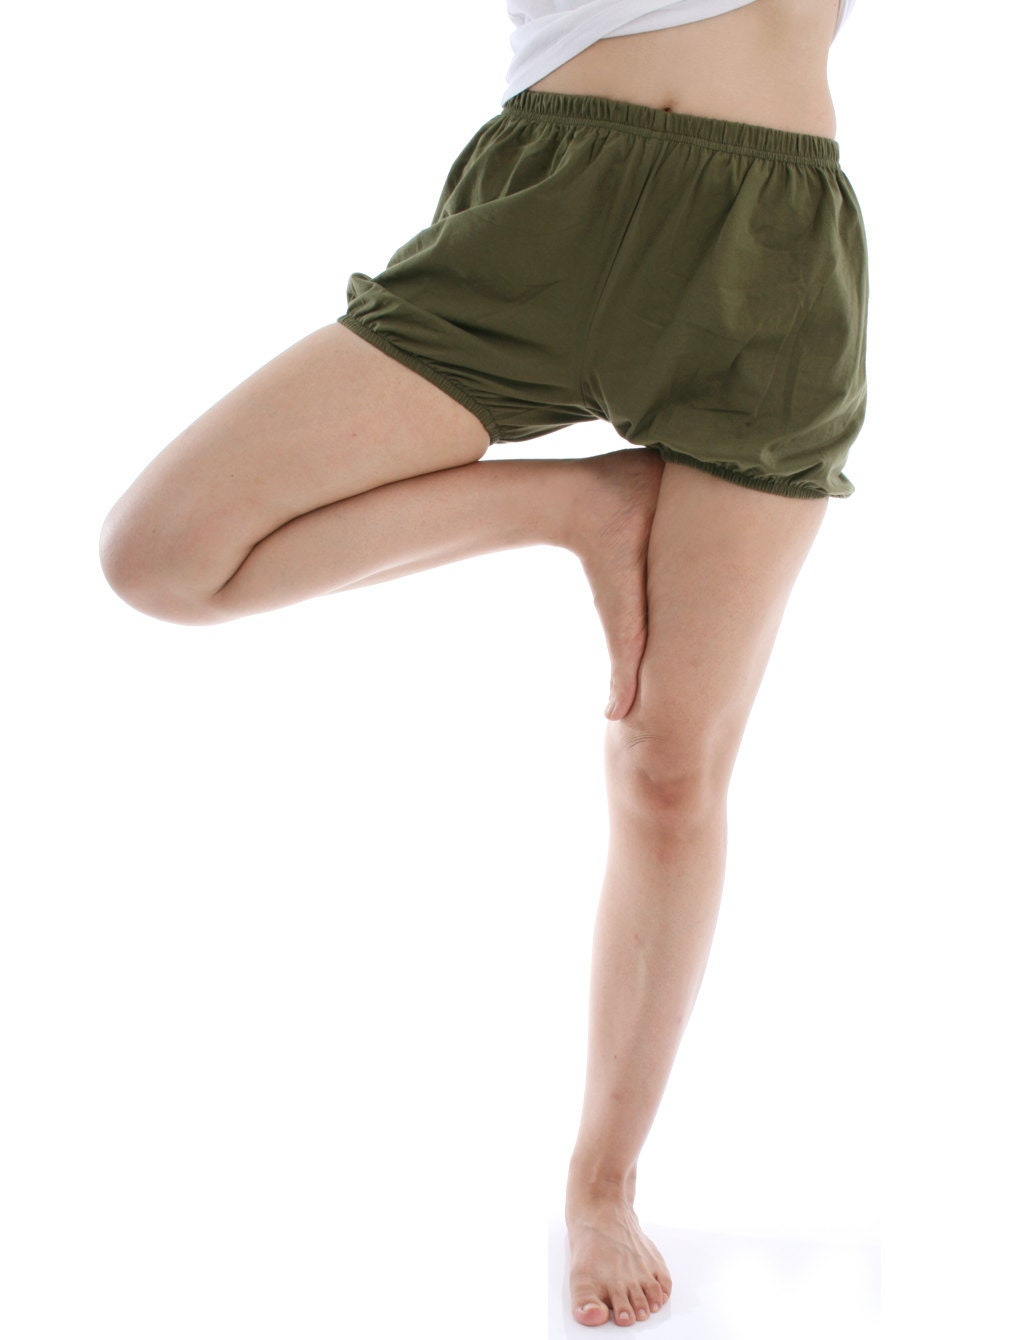 RTBU men women Iyengar Yoga Dance Ballet Practice Pilates Cotton Bloomer  Shorts Military Green